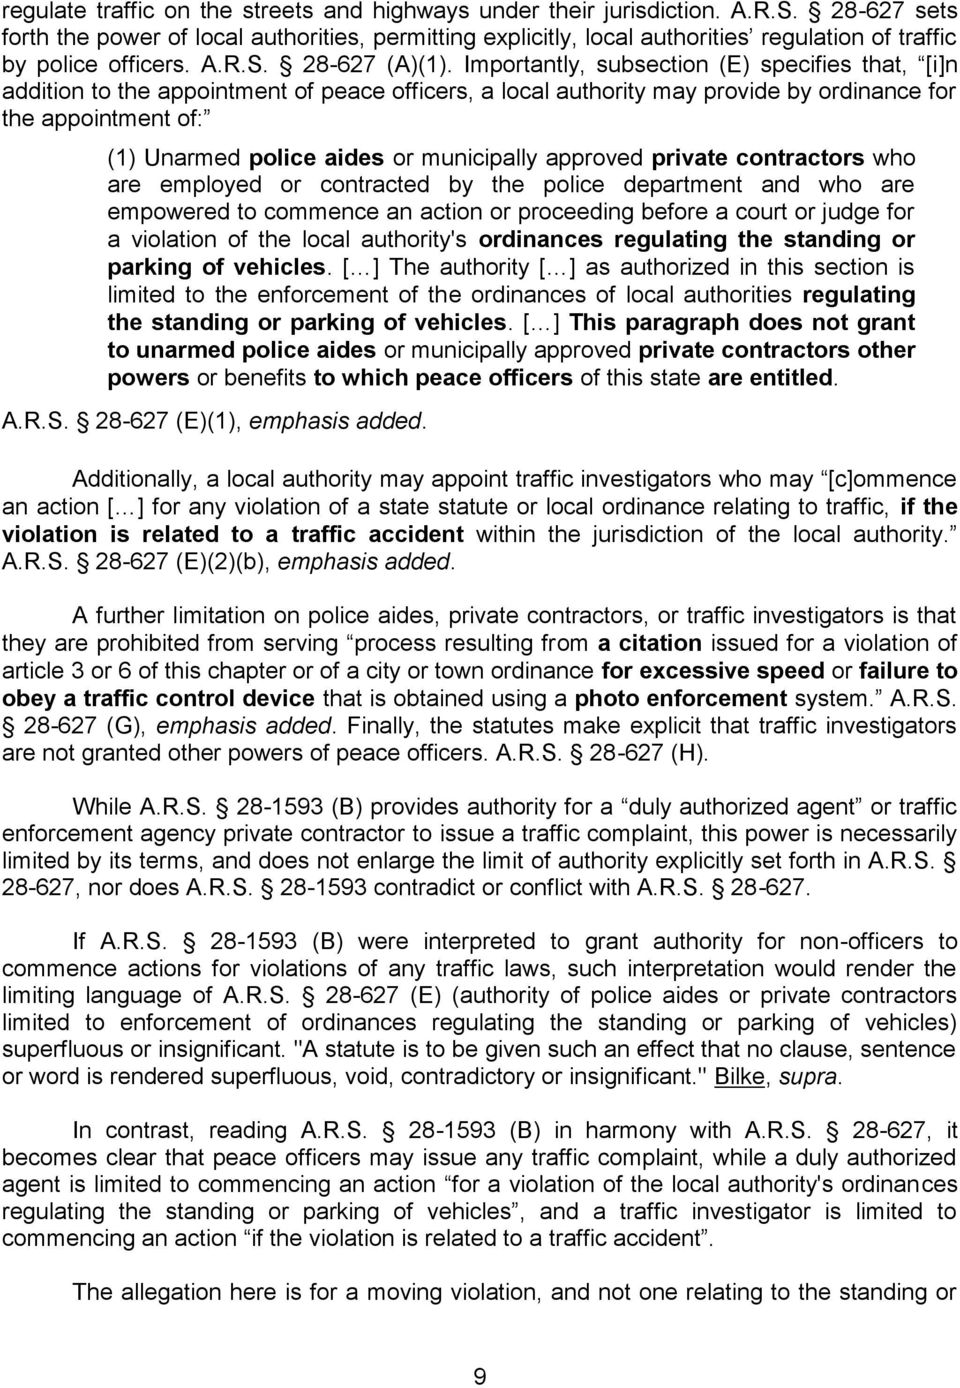 Importantly, subsection (E) specifies that, [i ]n addition to the appointment of peace officers, a local authority may provide by ordinance for the appointment of: (1) Unarmed police aides or